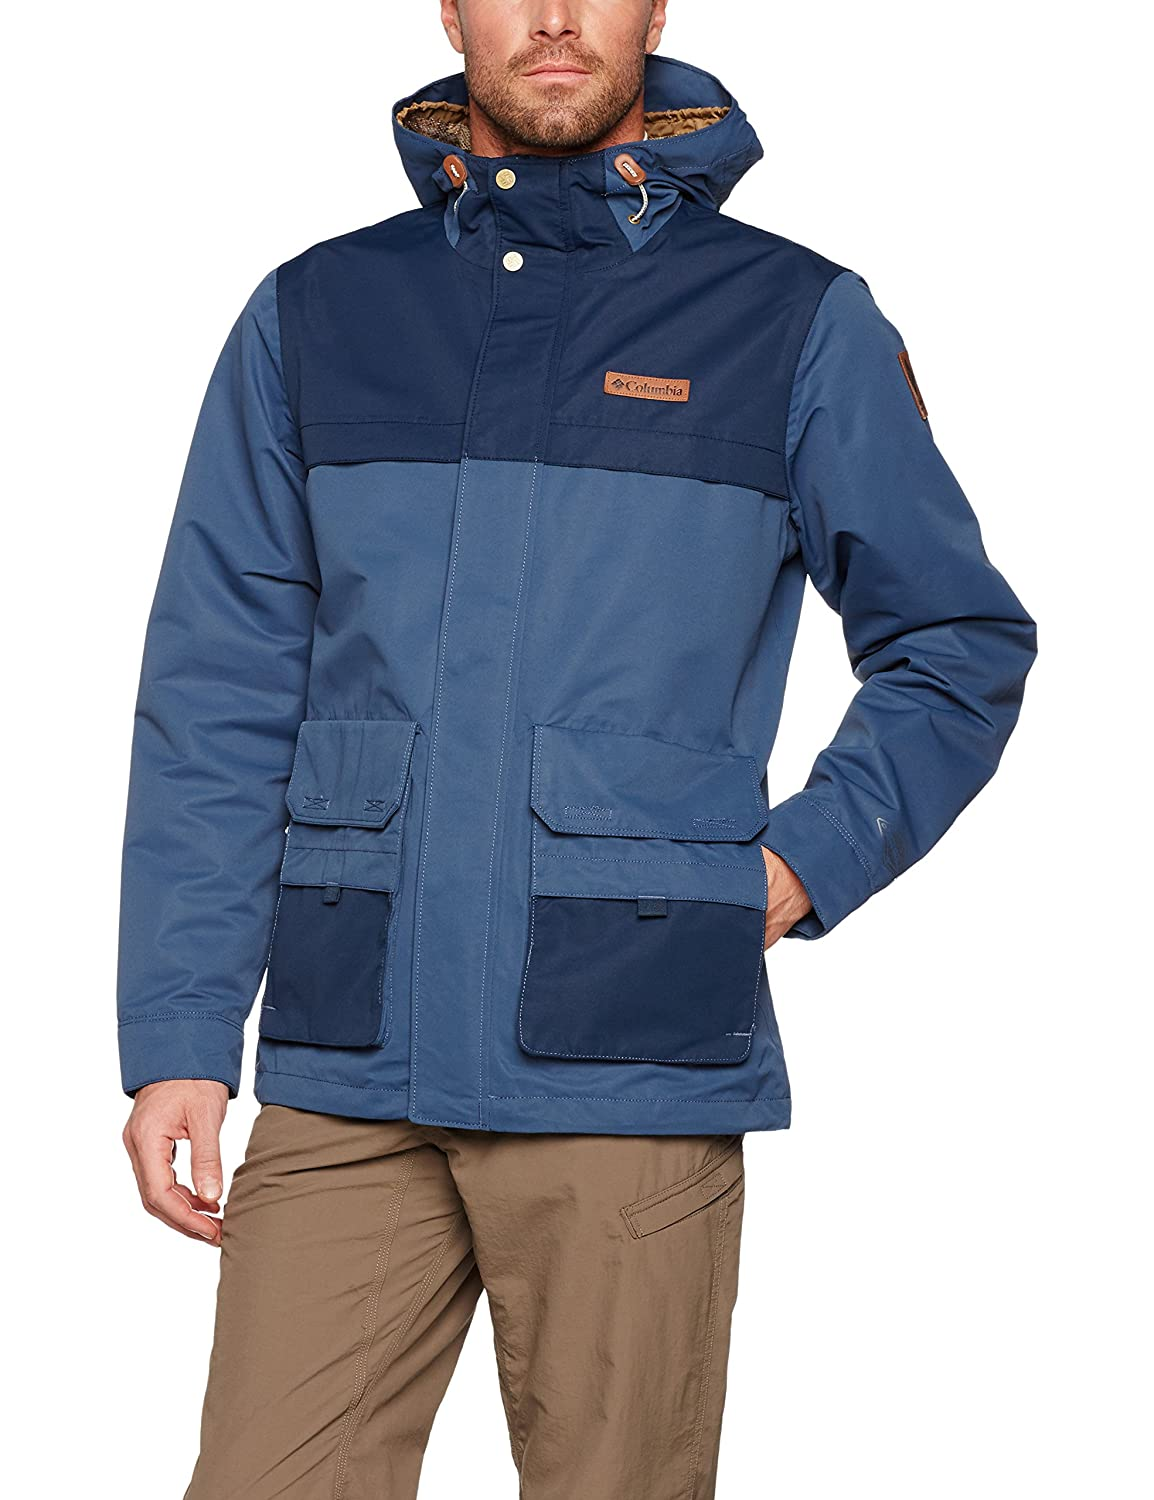 Columbia South Canyon Veste de Pluie Homme, British Tan, FR : XL (Taille Fabricant : XL)